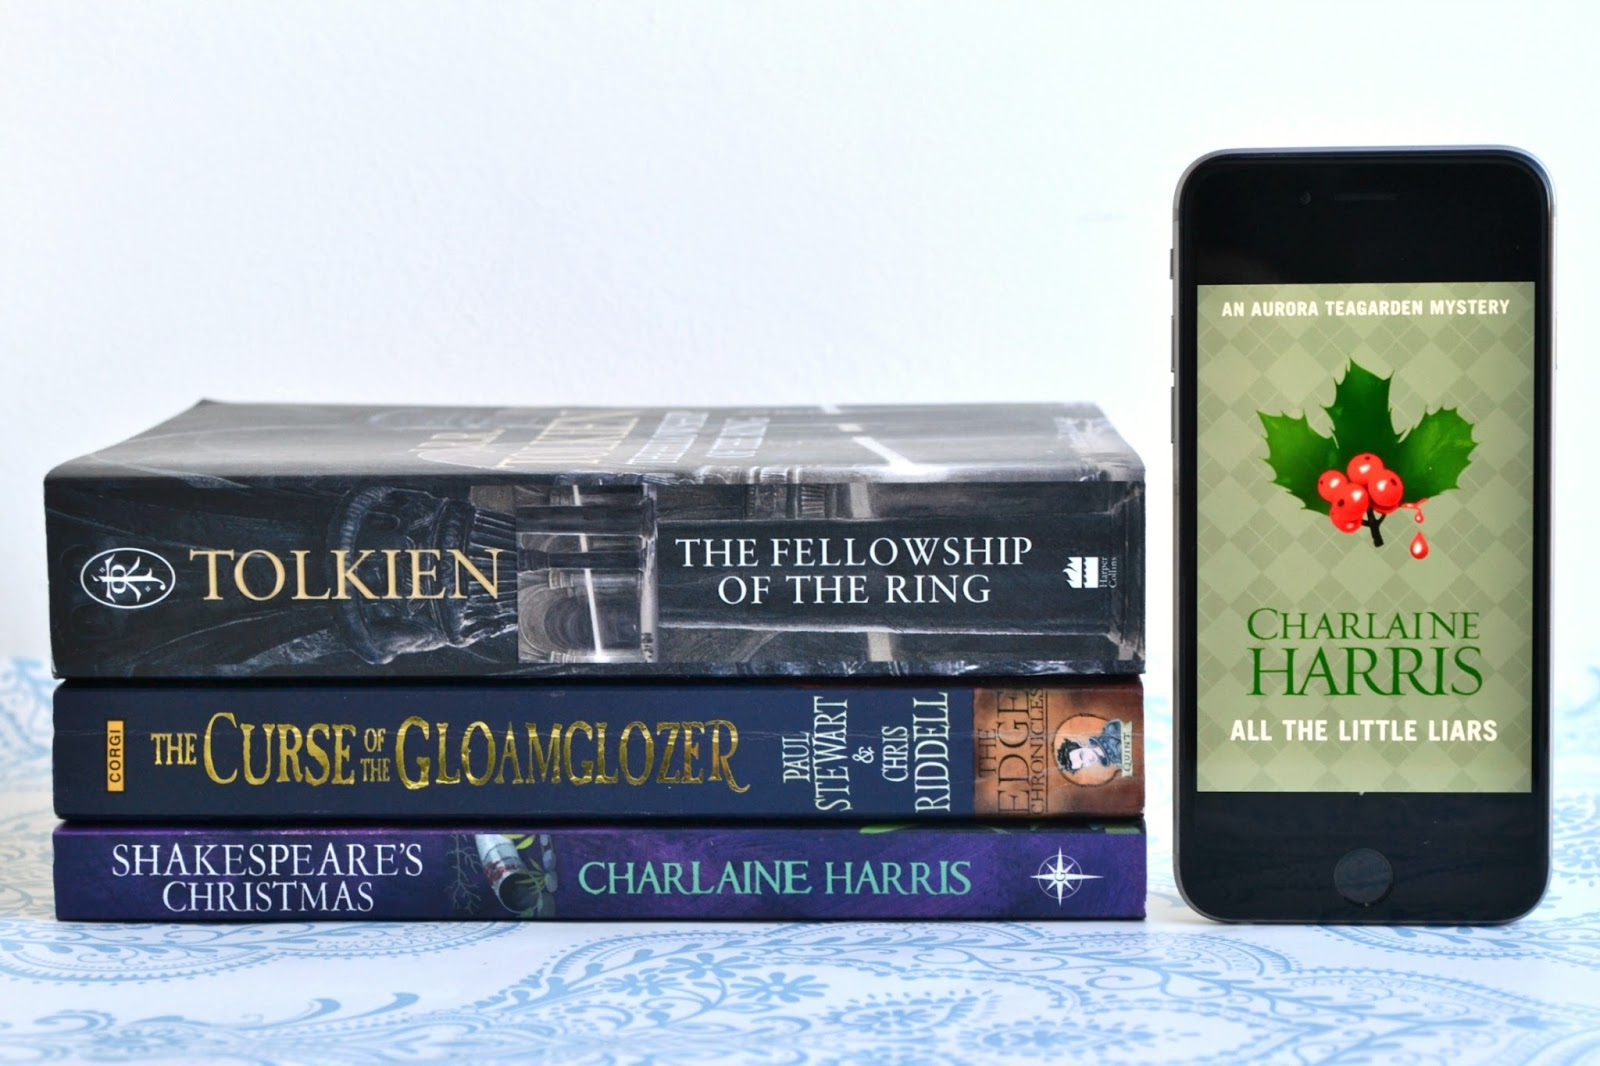 The Fellowship of the Ring by J. R. R. Tolkien, The Curse of the Gloamglozer by Paul Stewart & Chris Riddell, Shakespeare's Christmas and  All The Little Liars by Charlaine Harris